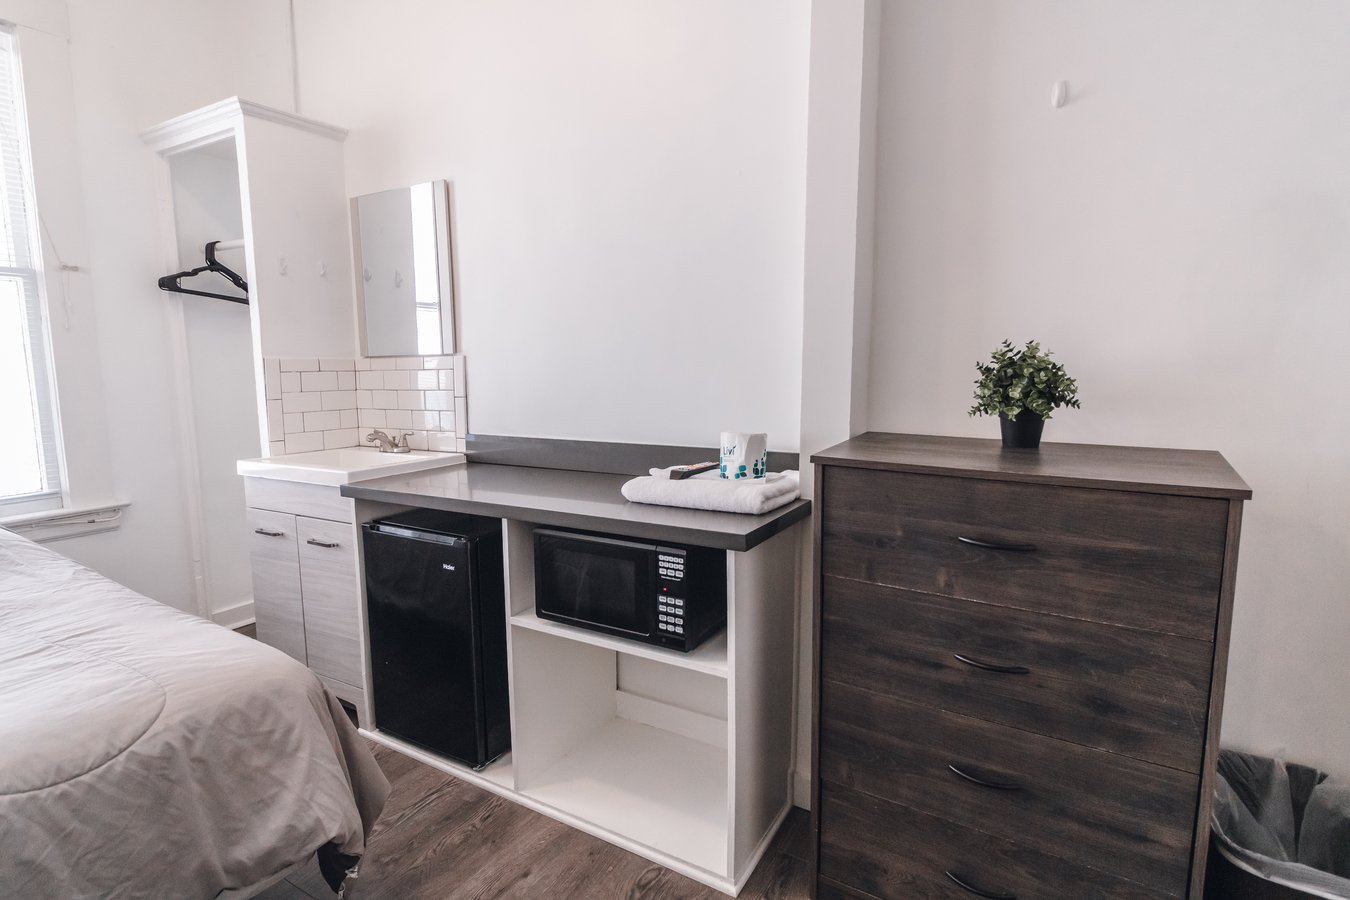 1 Bedroom 1 Bathroom Apartment for rent at Pyramid Residences Coliving in San Francisco, CA